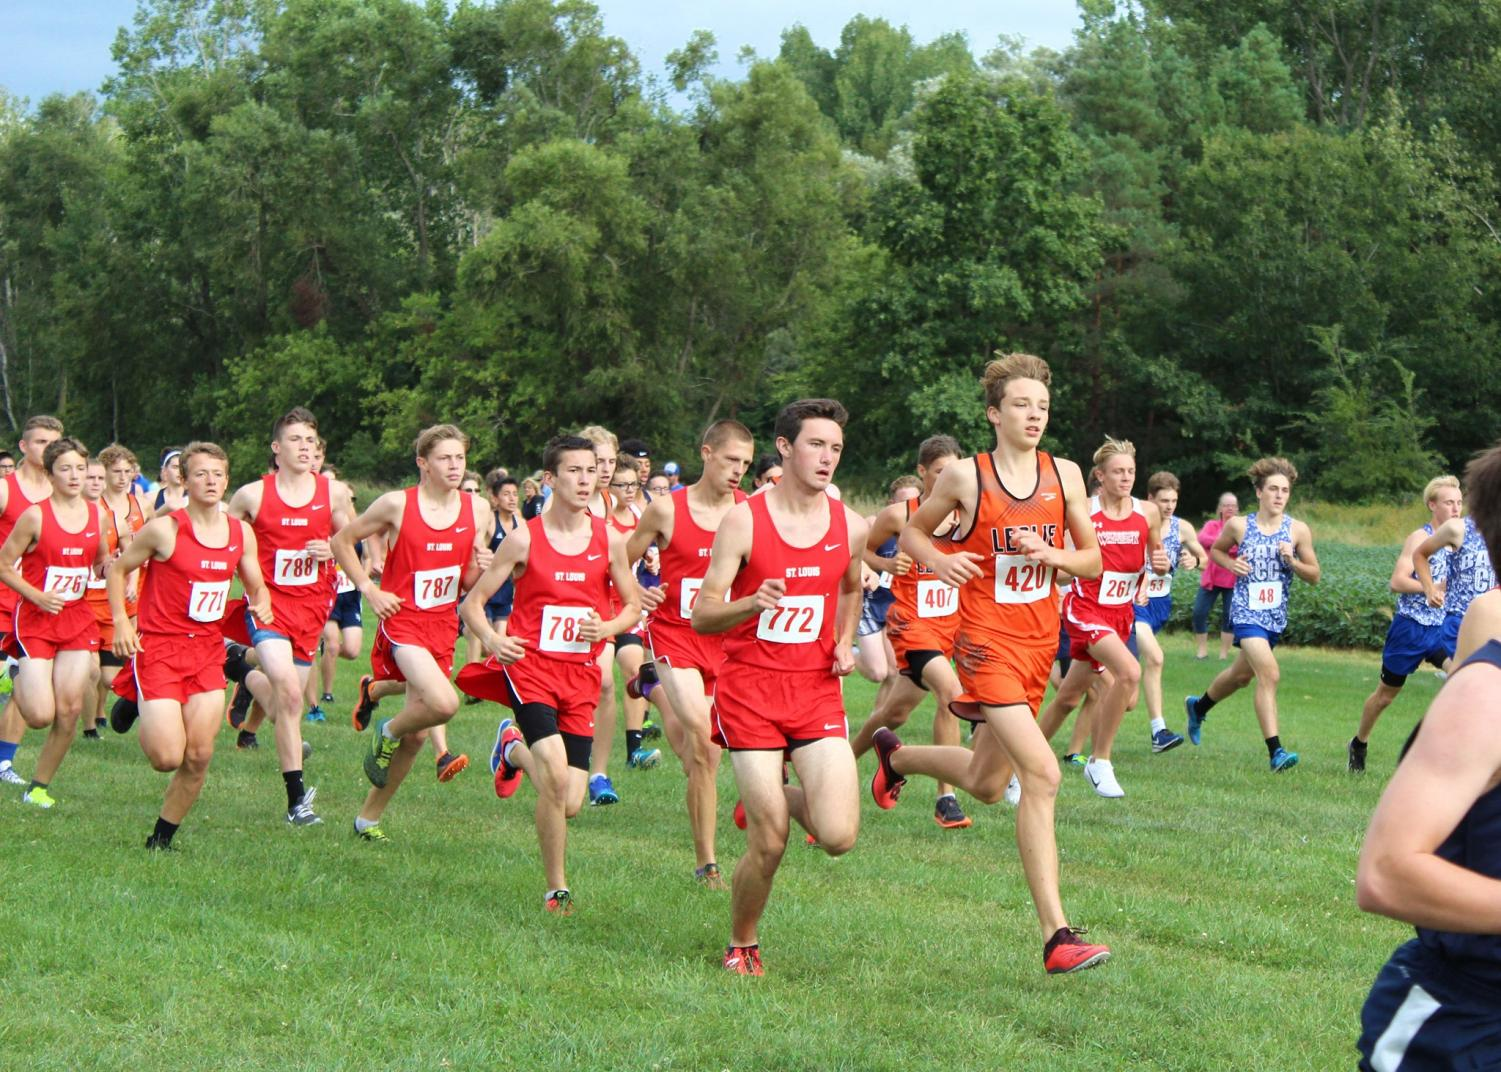 The boys' varsity starts the race as a pack.